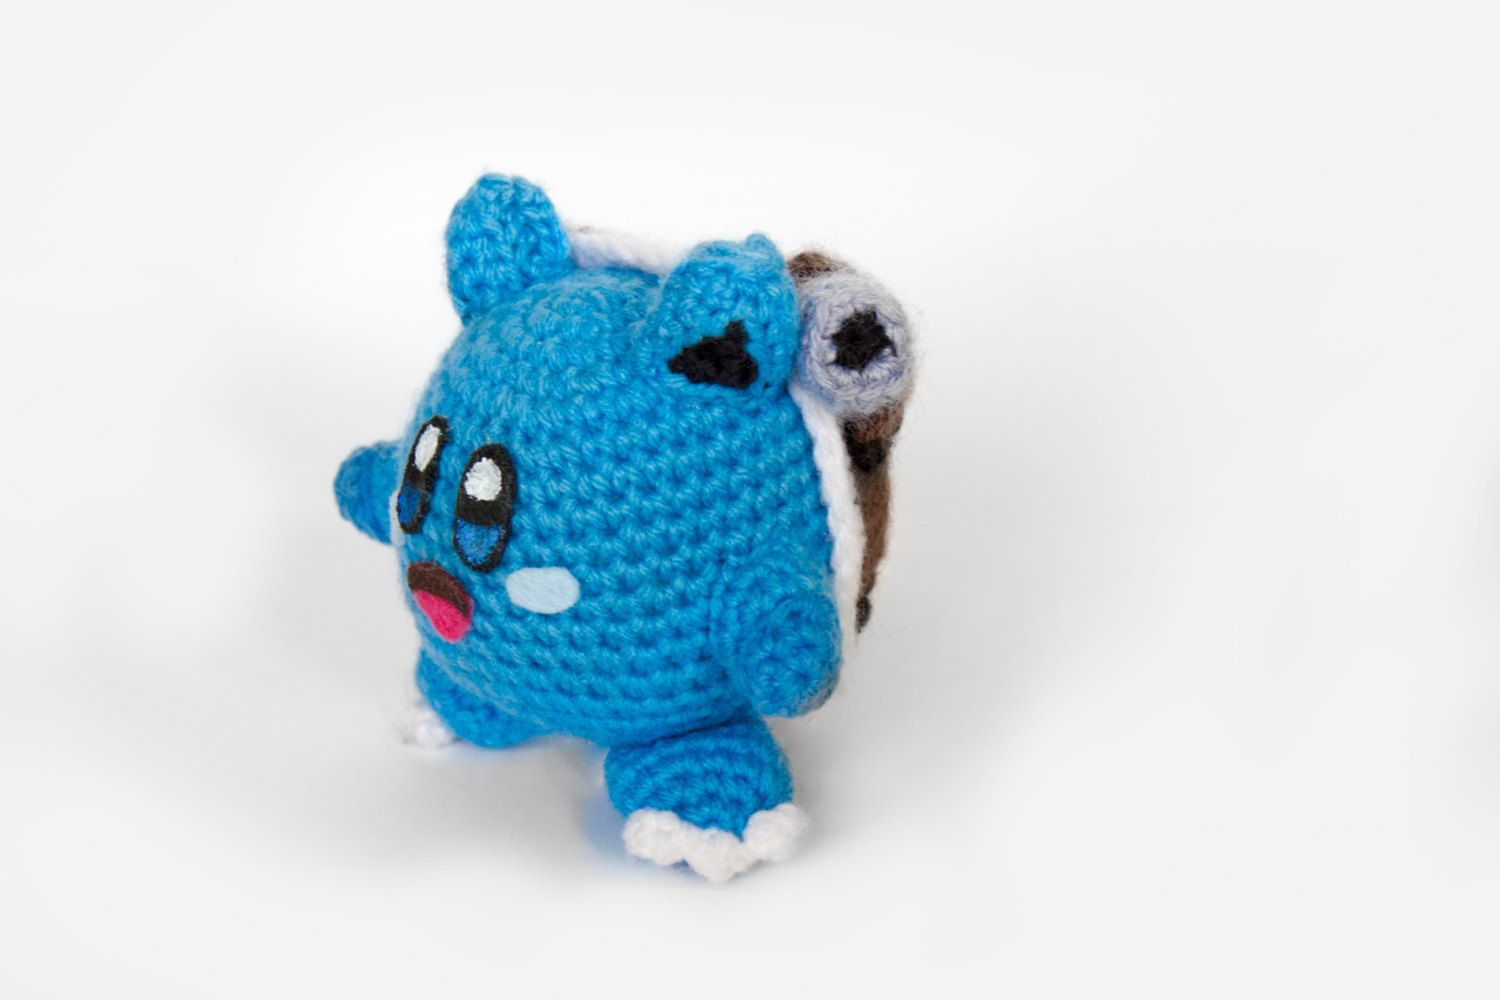 Crochet Blastoise Kirby Amigurumi **Made to order